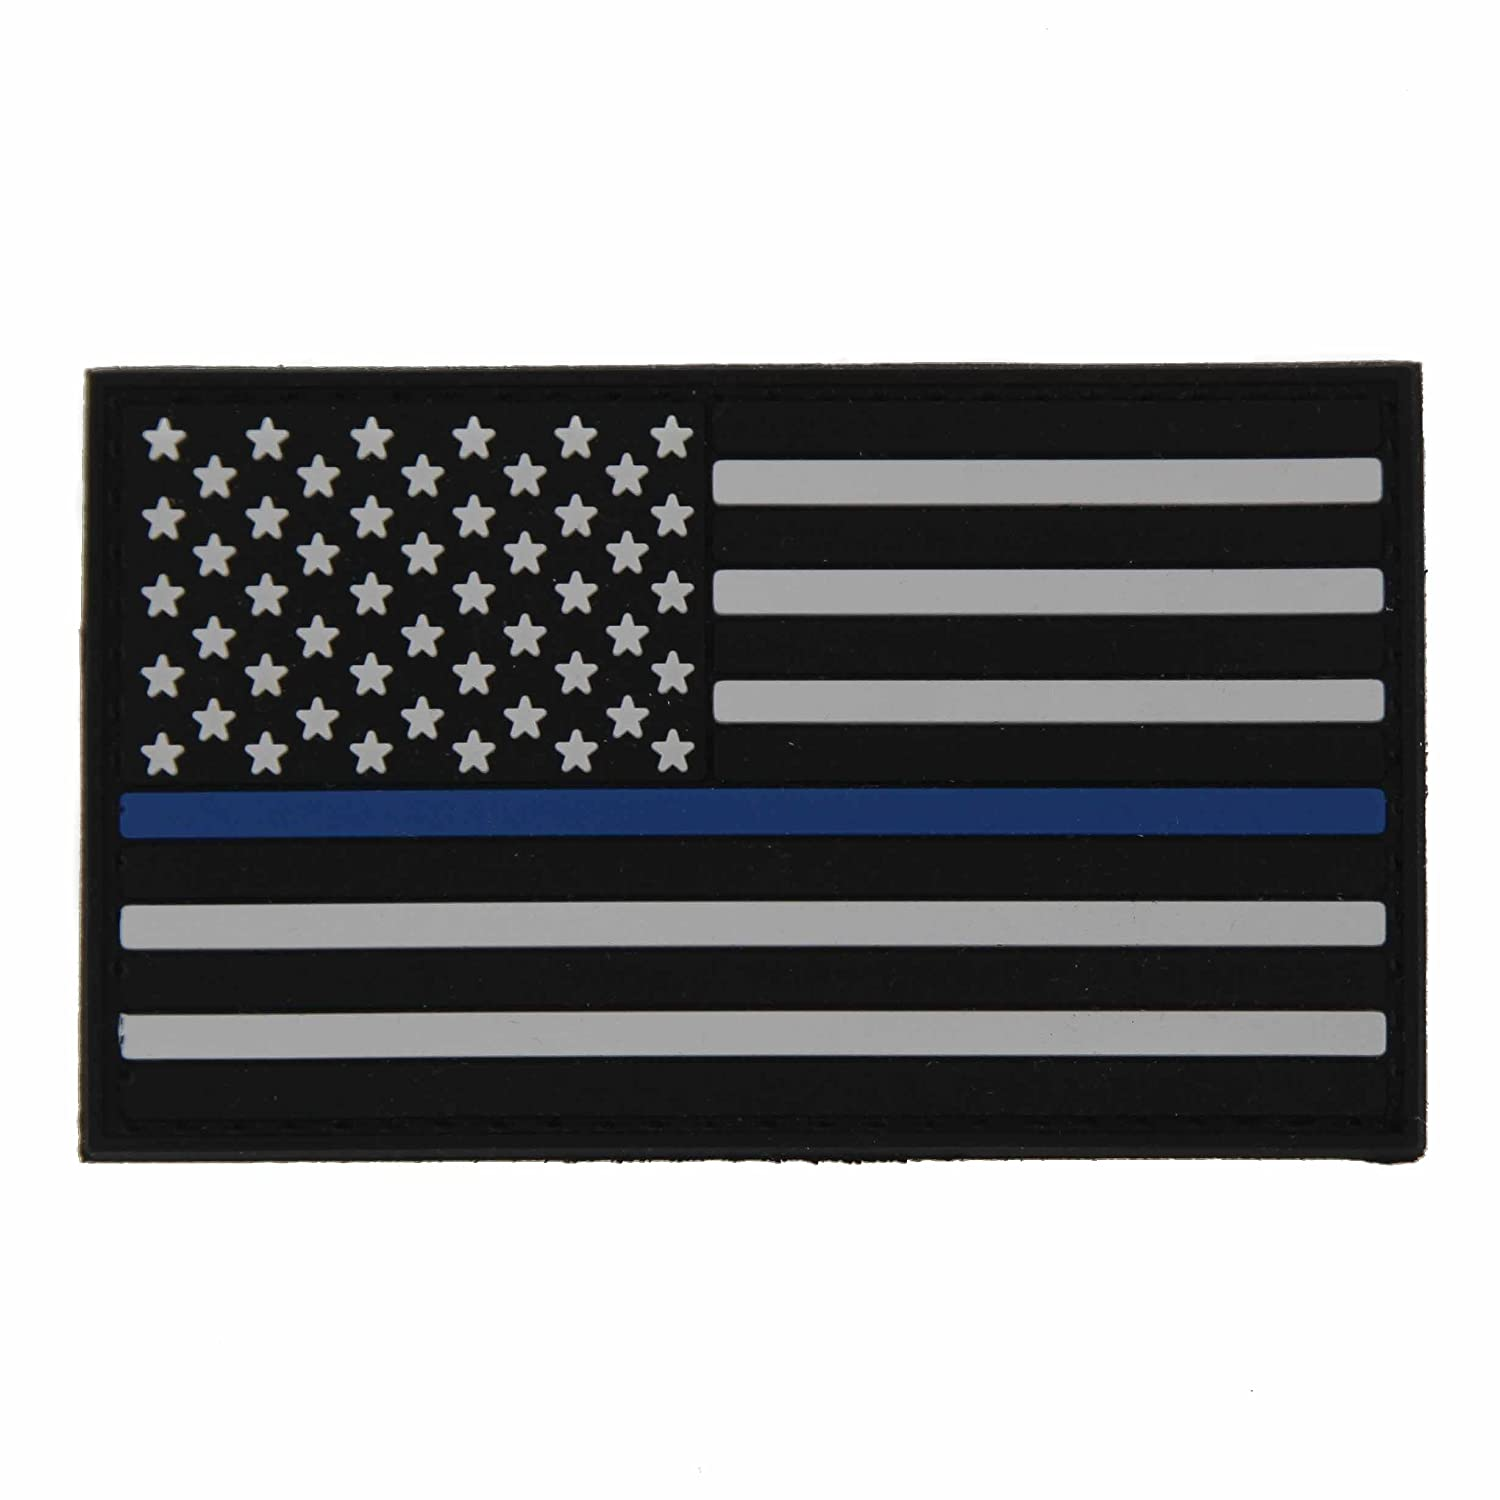 NEO Tactical Gear US Flag Thin Blue LINE for Police and Law Enforcement - Crossfit Patch - PVC Morale Patch, Hook Backed Morale Patch